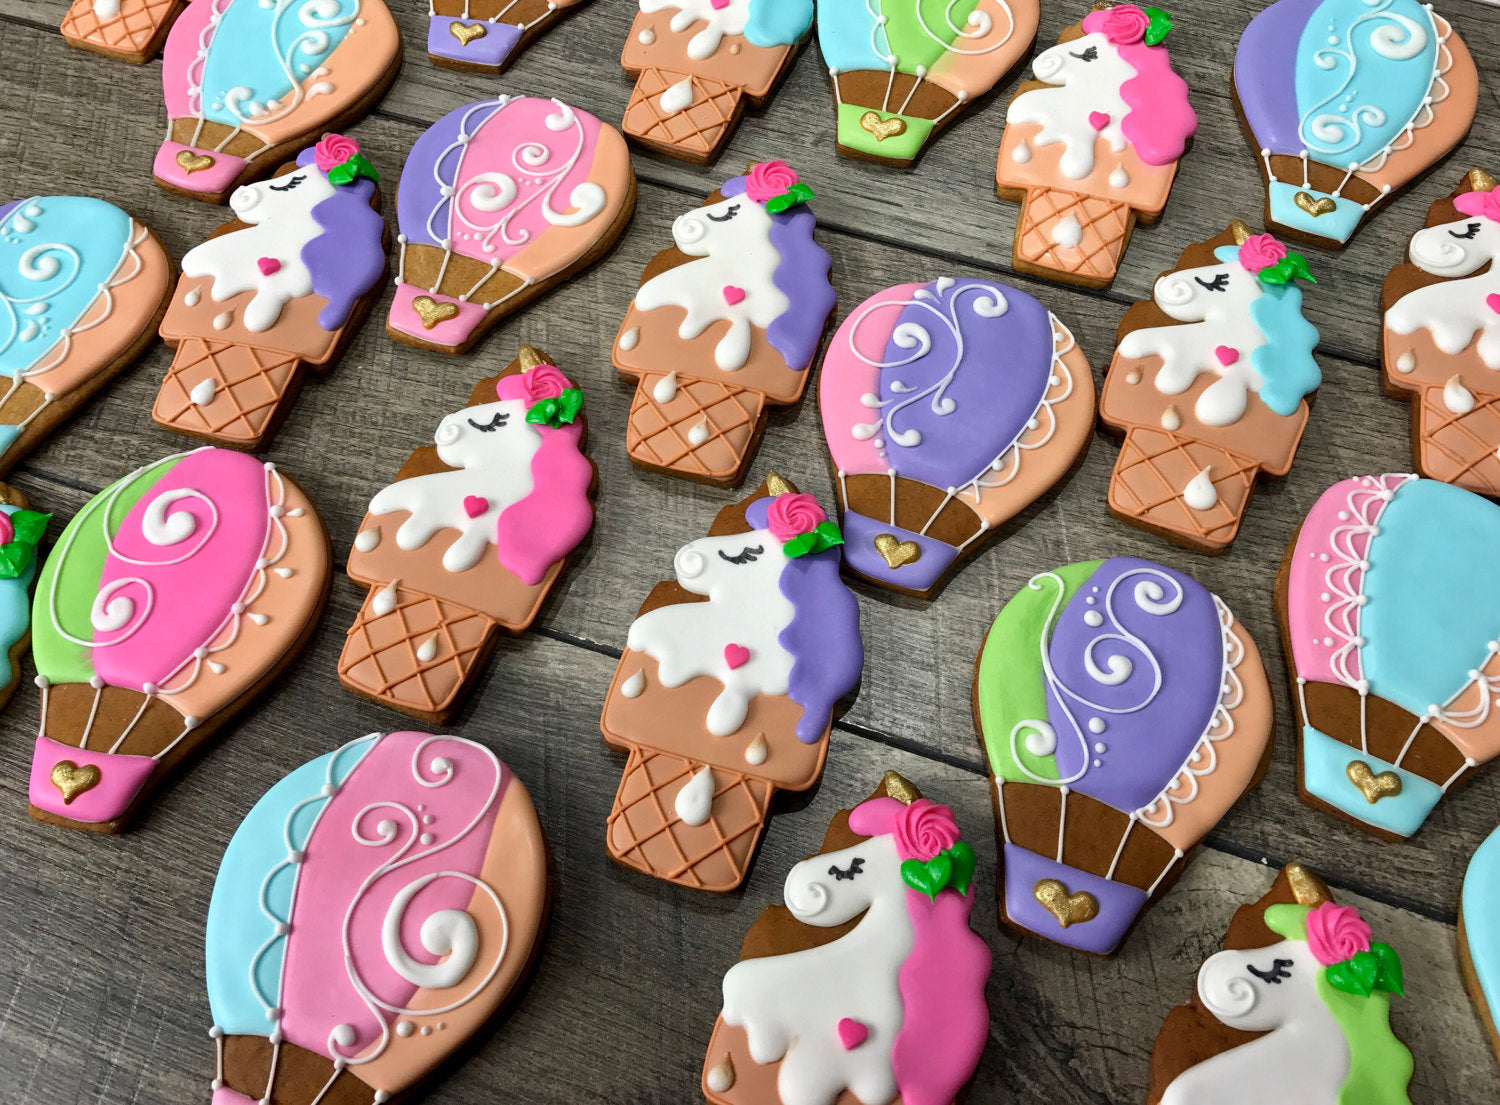 Unicorns And Hot Air Balloons Iced Sugar Cookies created by Tale Cookies featured on TheIcedSugarCookie.com #cookies #sugarcookies #decoratedcookies #unicorncookies #hotairballooncookies #theicedsugarcookie